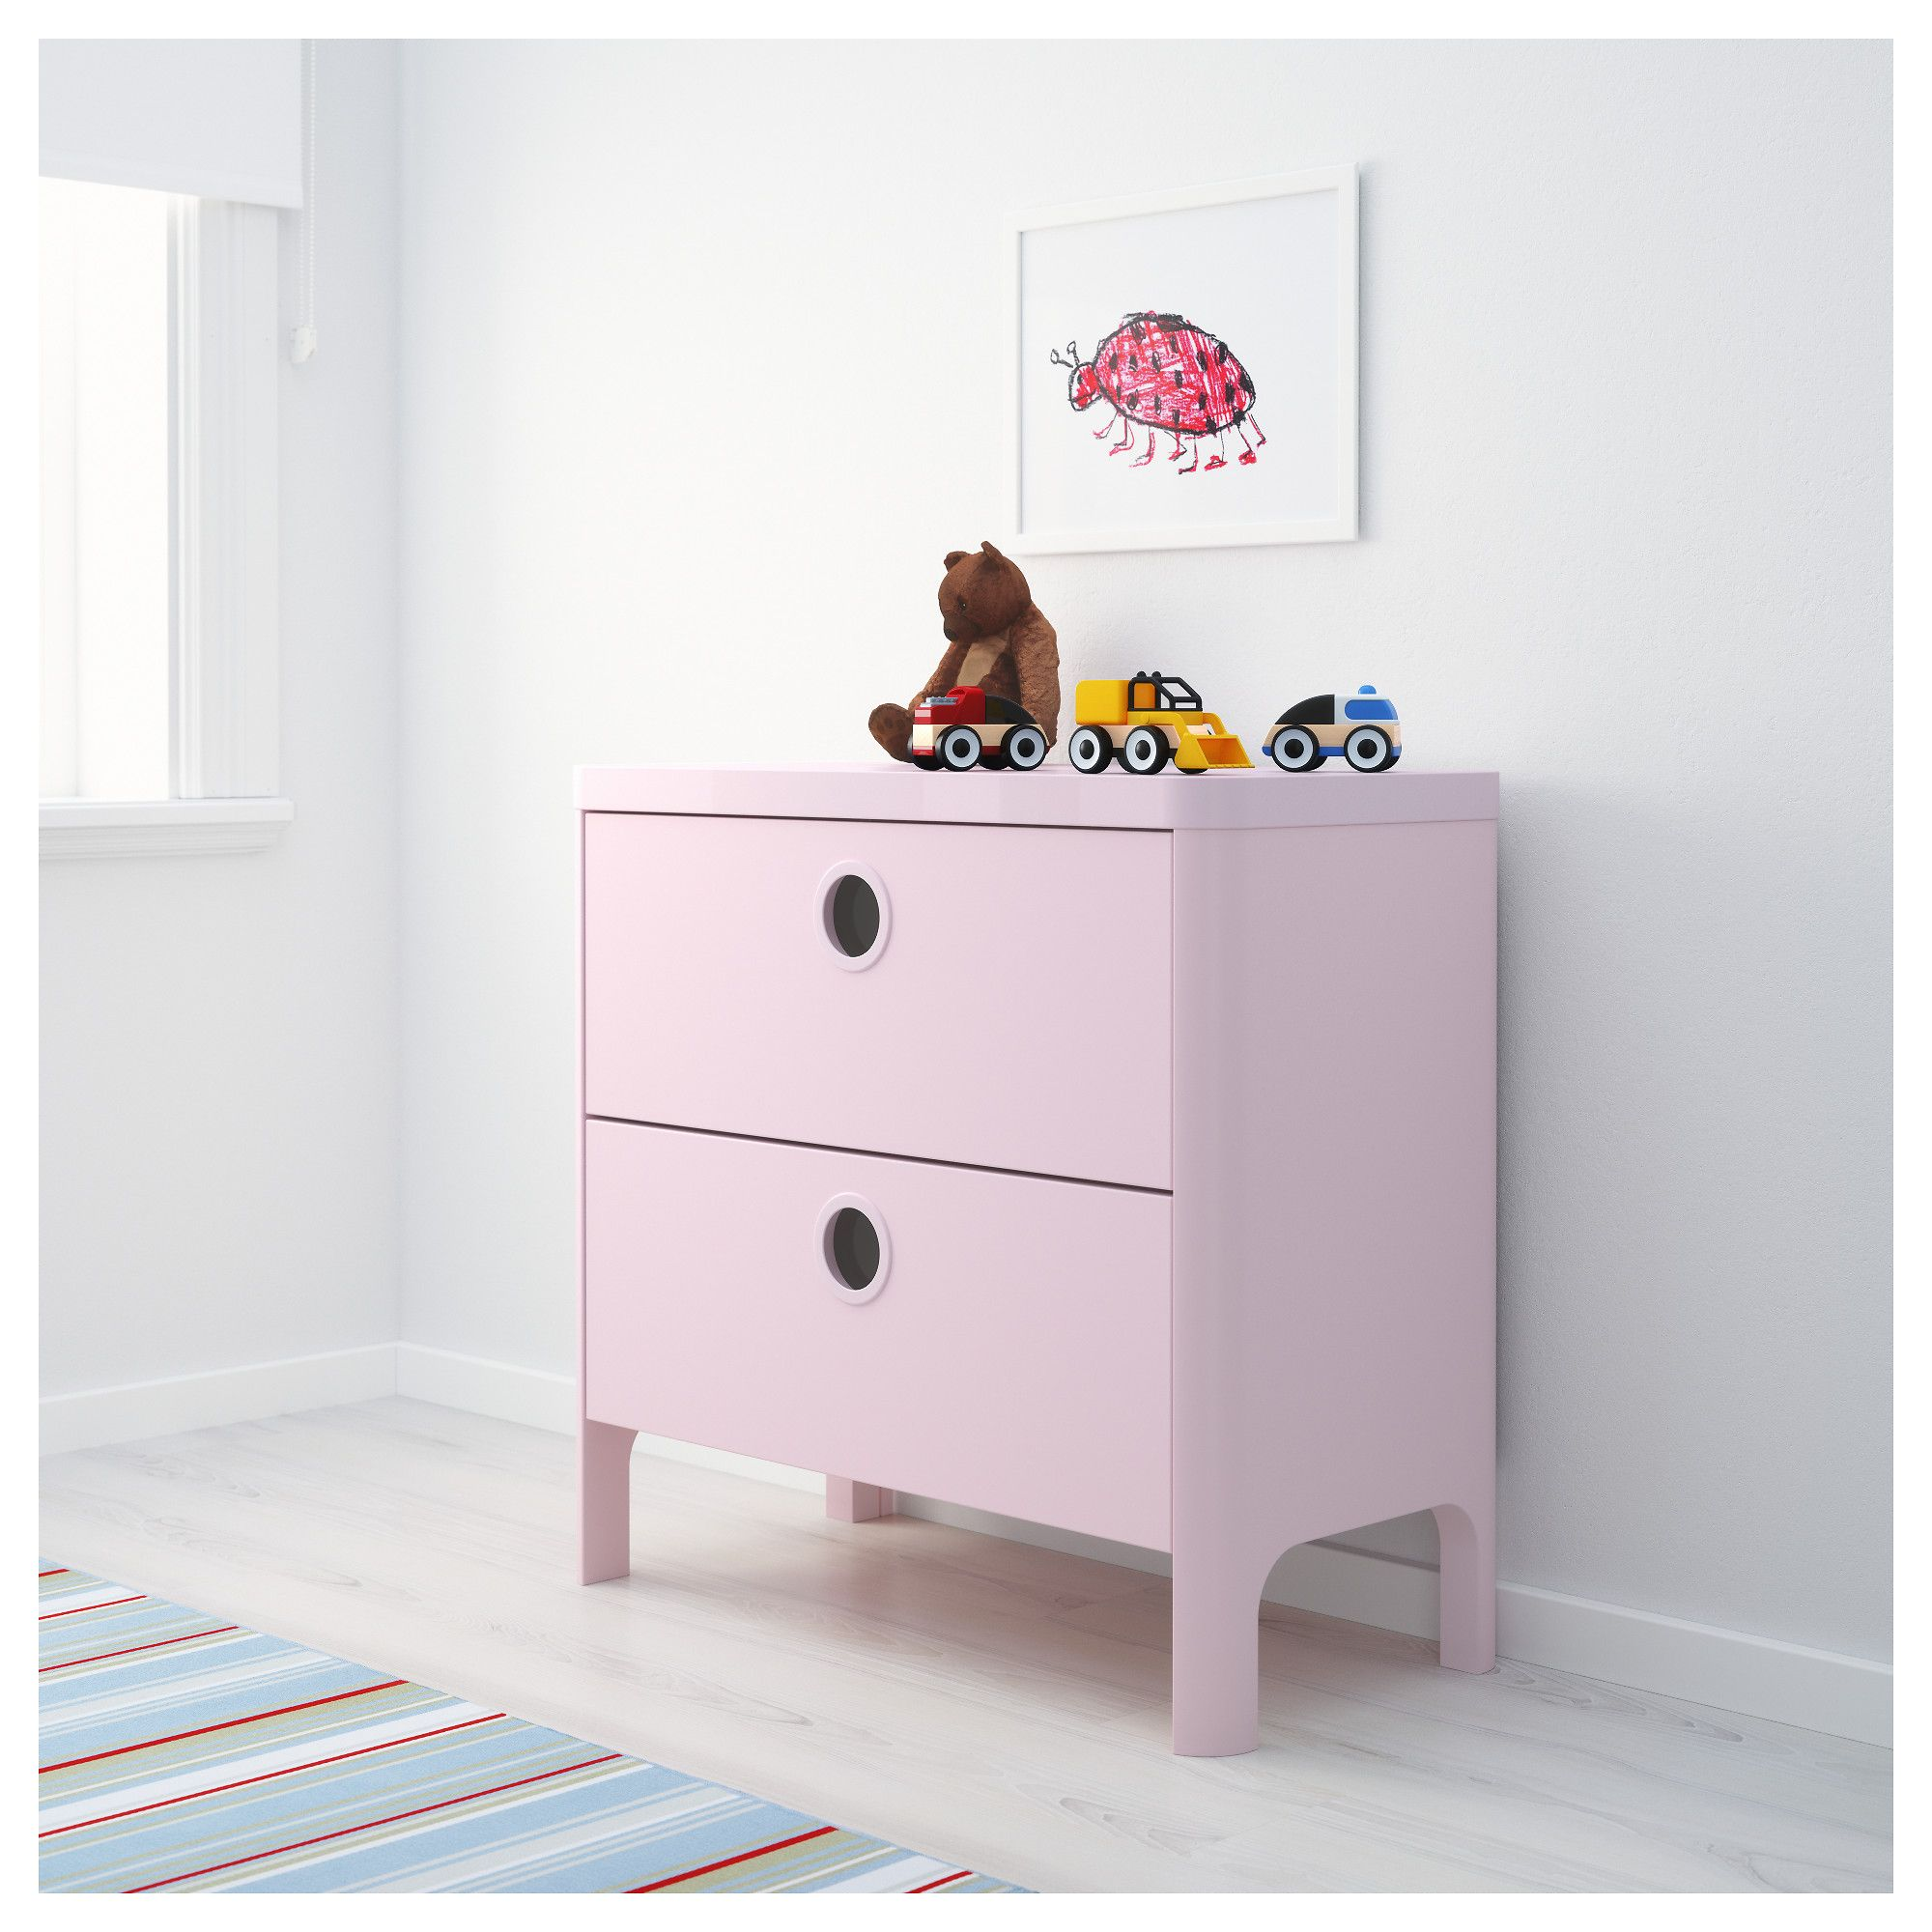 Ikea Kinderbett Busunge Busunge Chest Of 2 Drawers Light Pink Ikea Zoes New Room